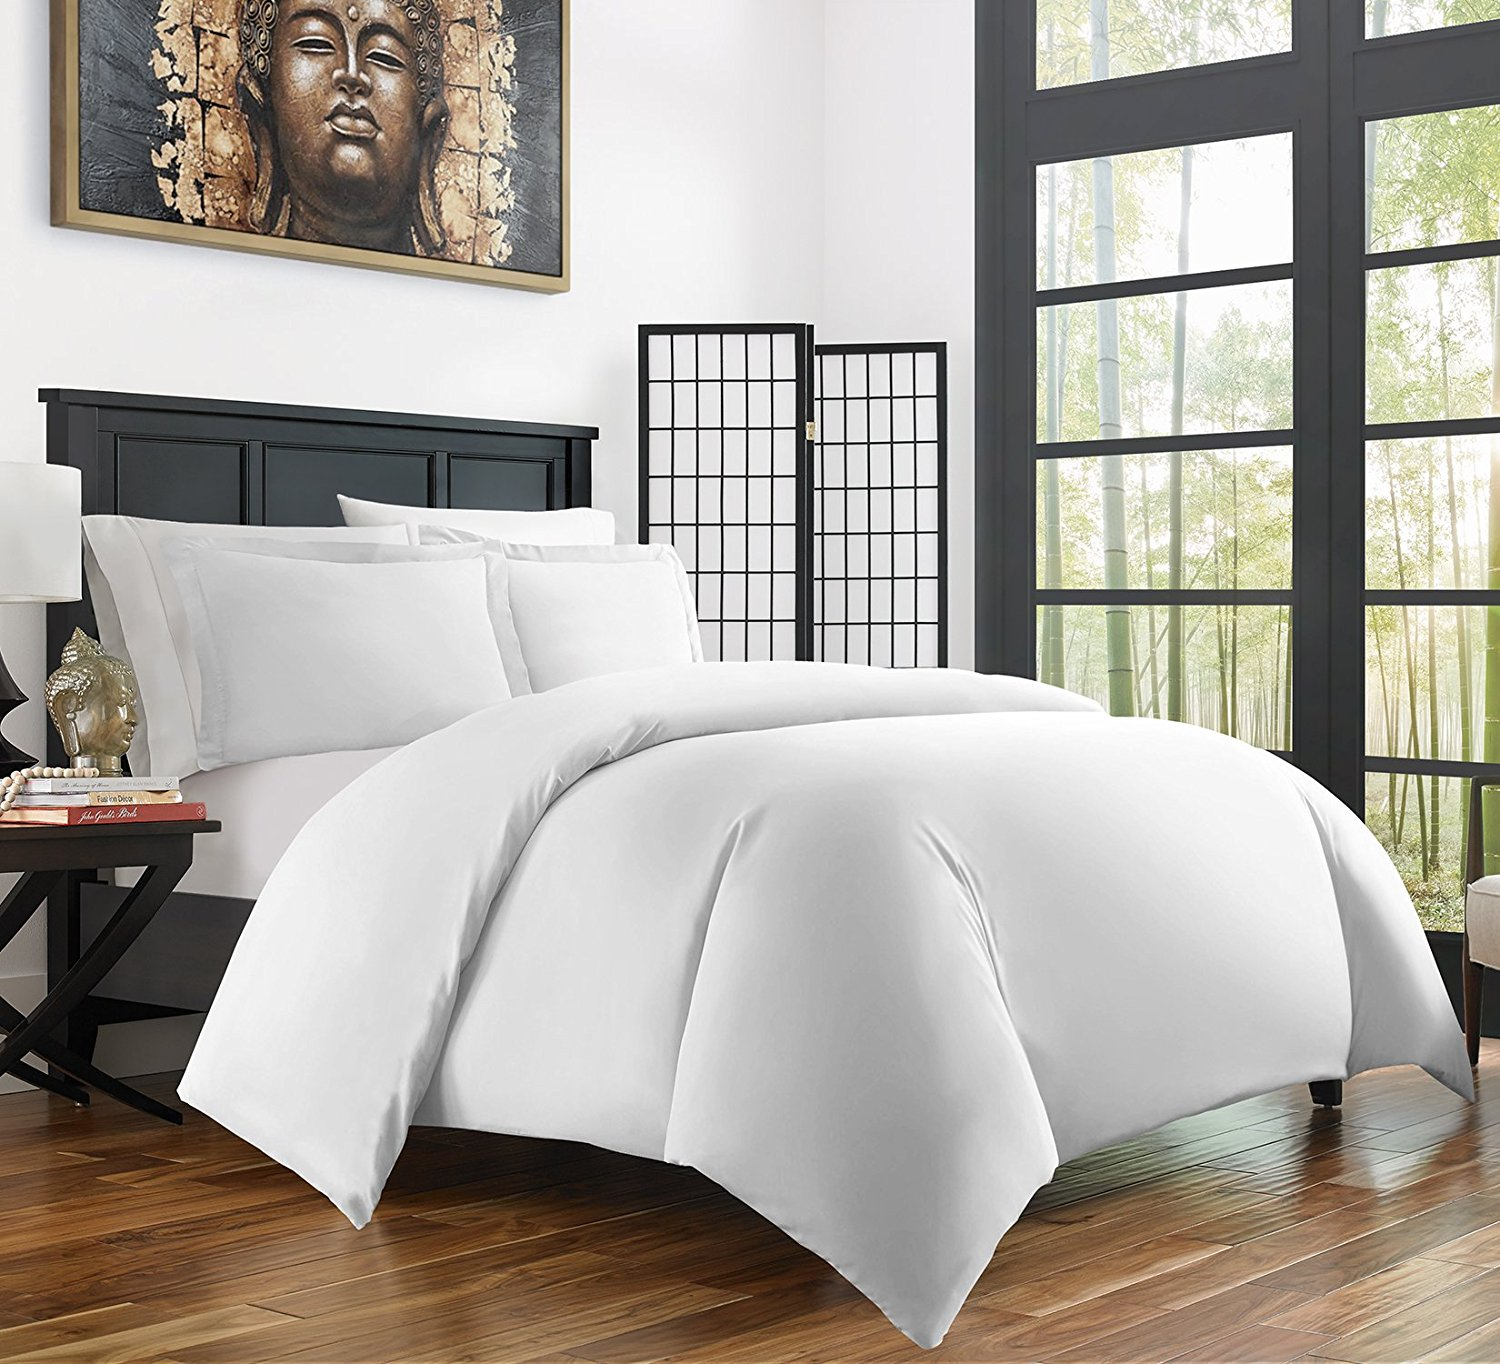 Zen Bamboo Ultra Soft 3-Piece Bamboo Twin/Twin XL Duvet Cover Set - Hypoallergenic and Wrinkle Resistant, White